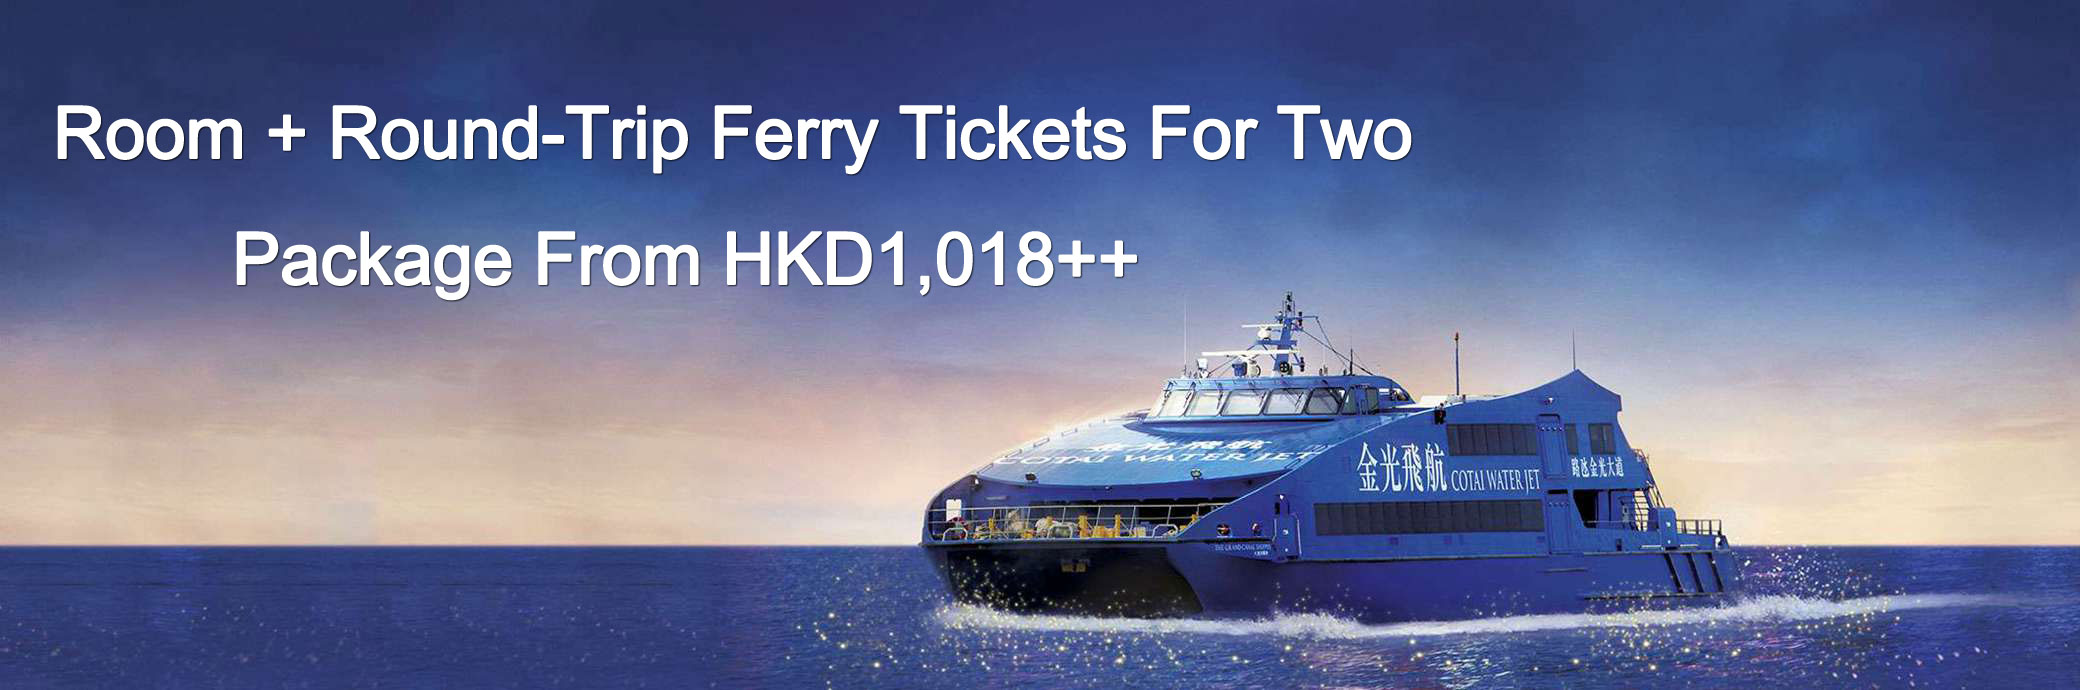 Holiday Inn Macao Hotel Ferry Package